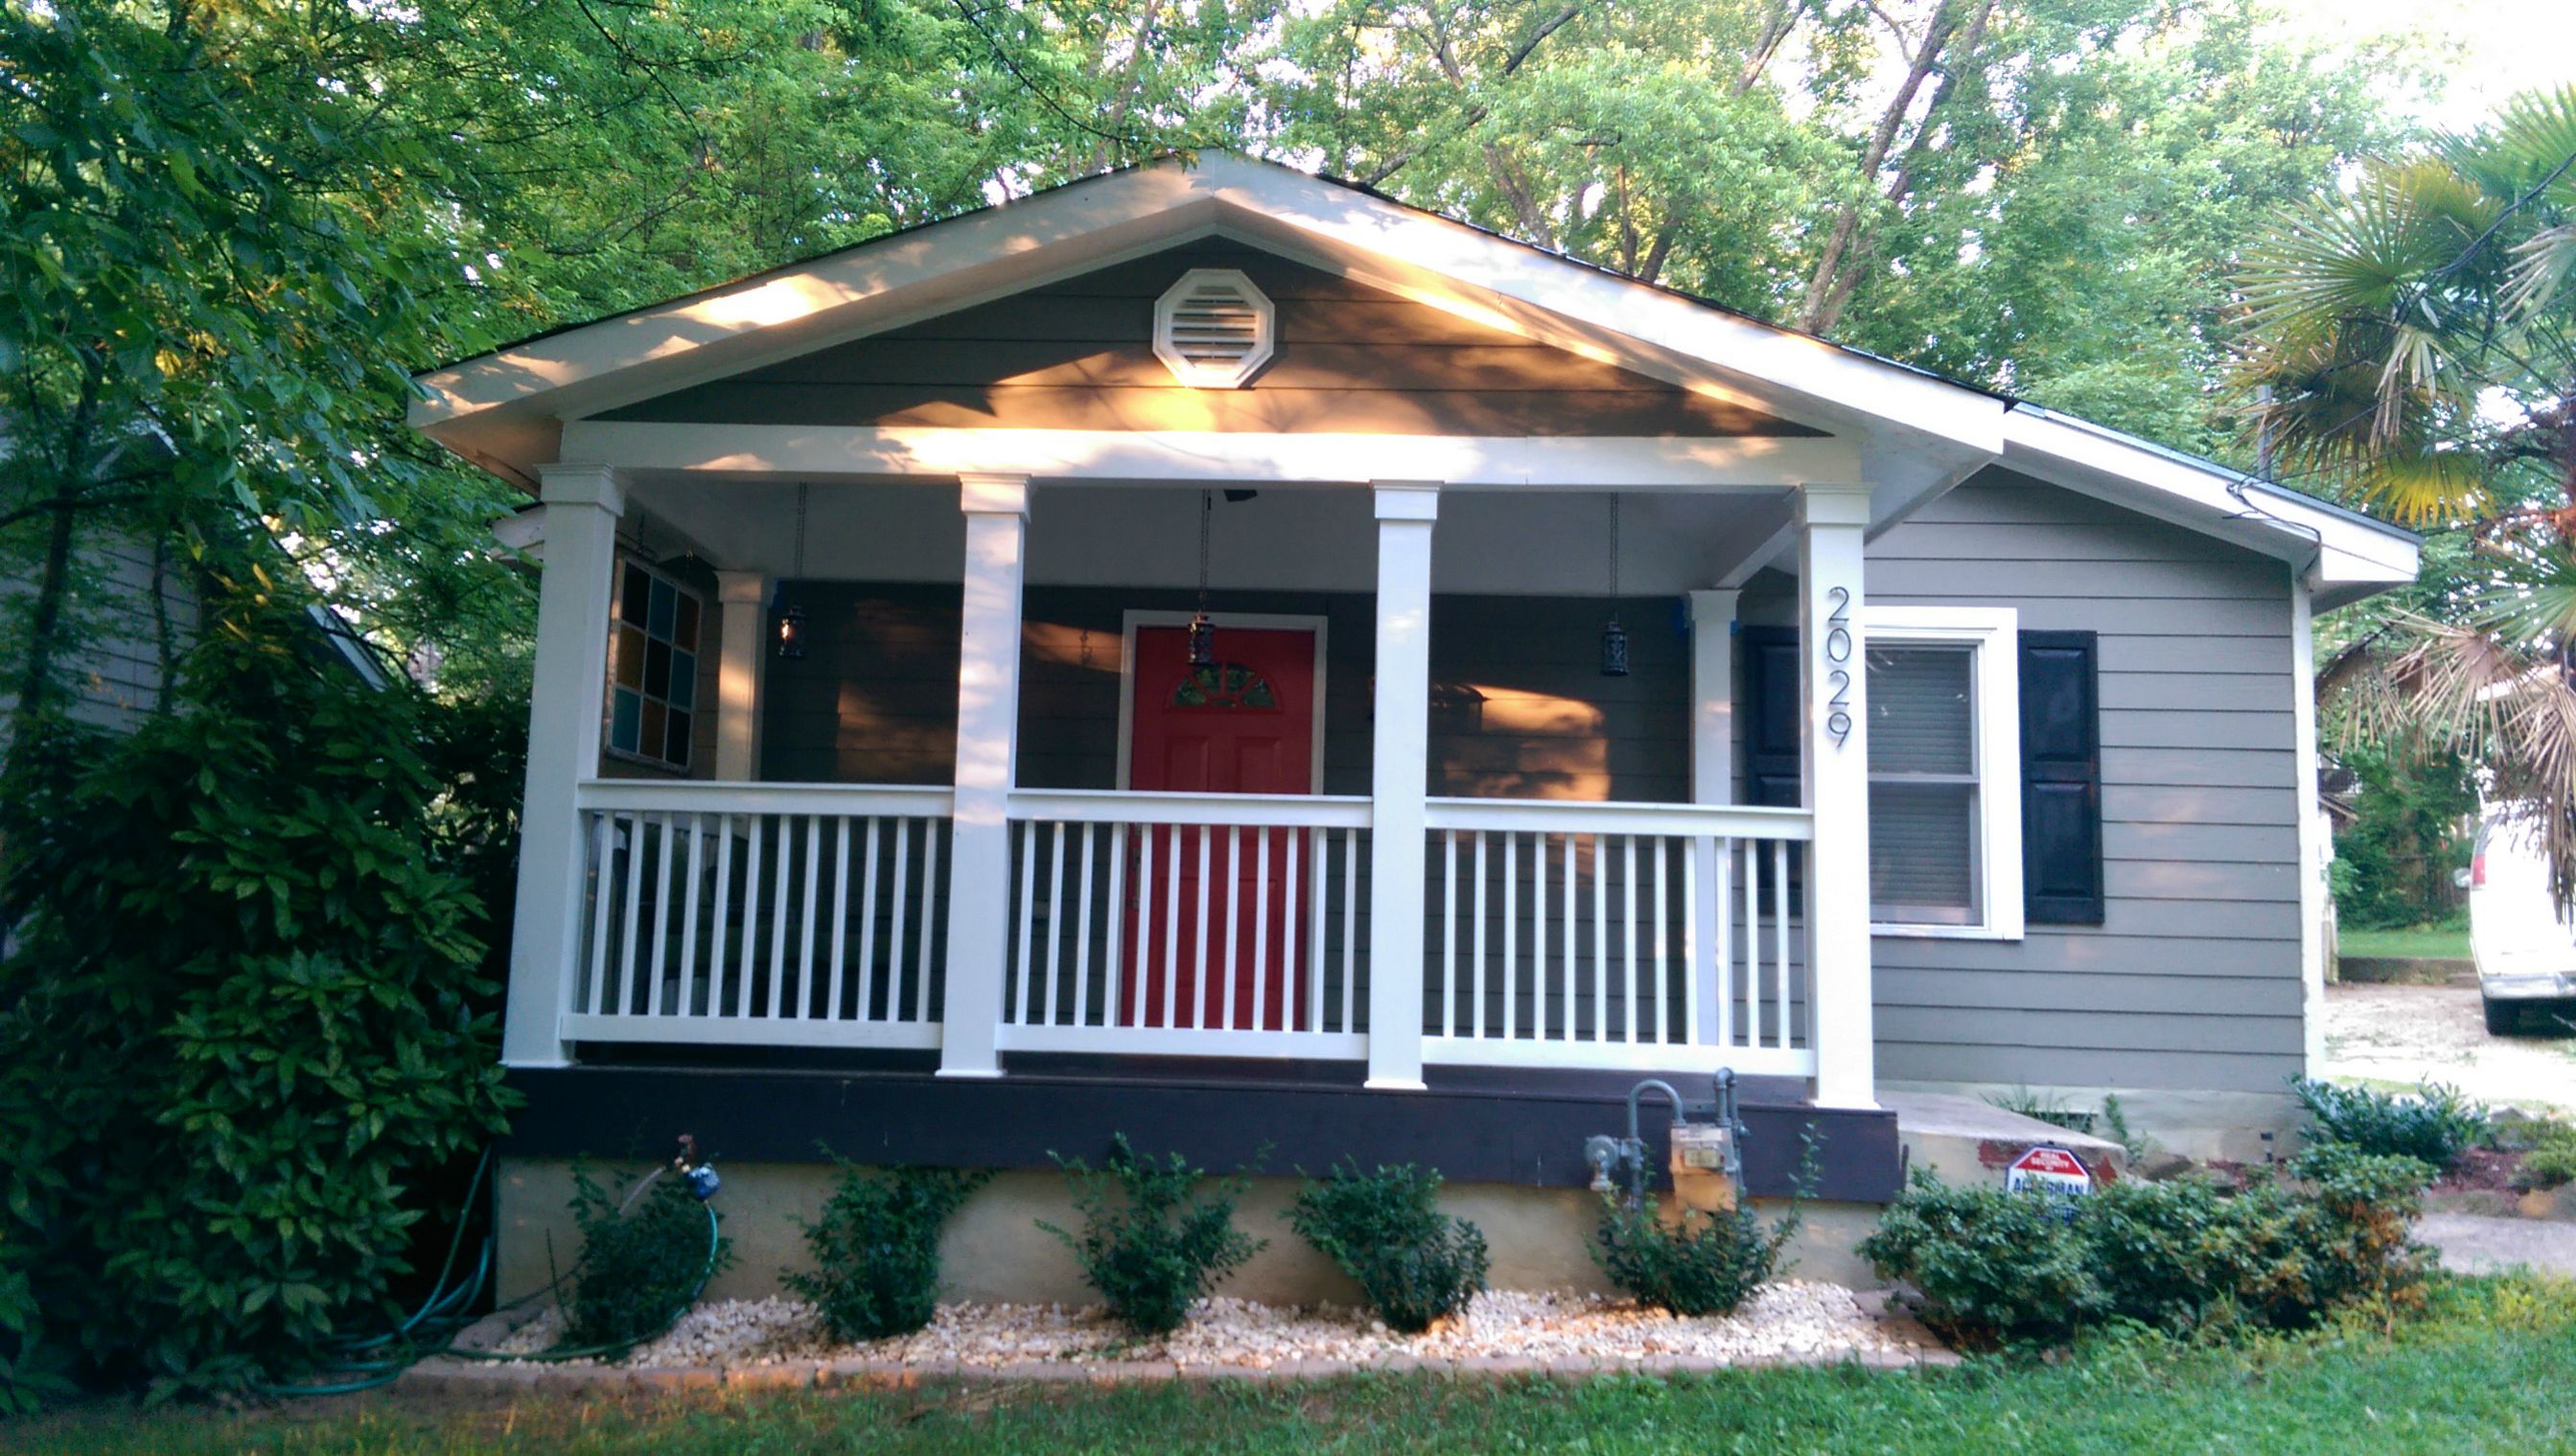 Decks And Porches Archives Mobile And Manufactured Home